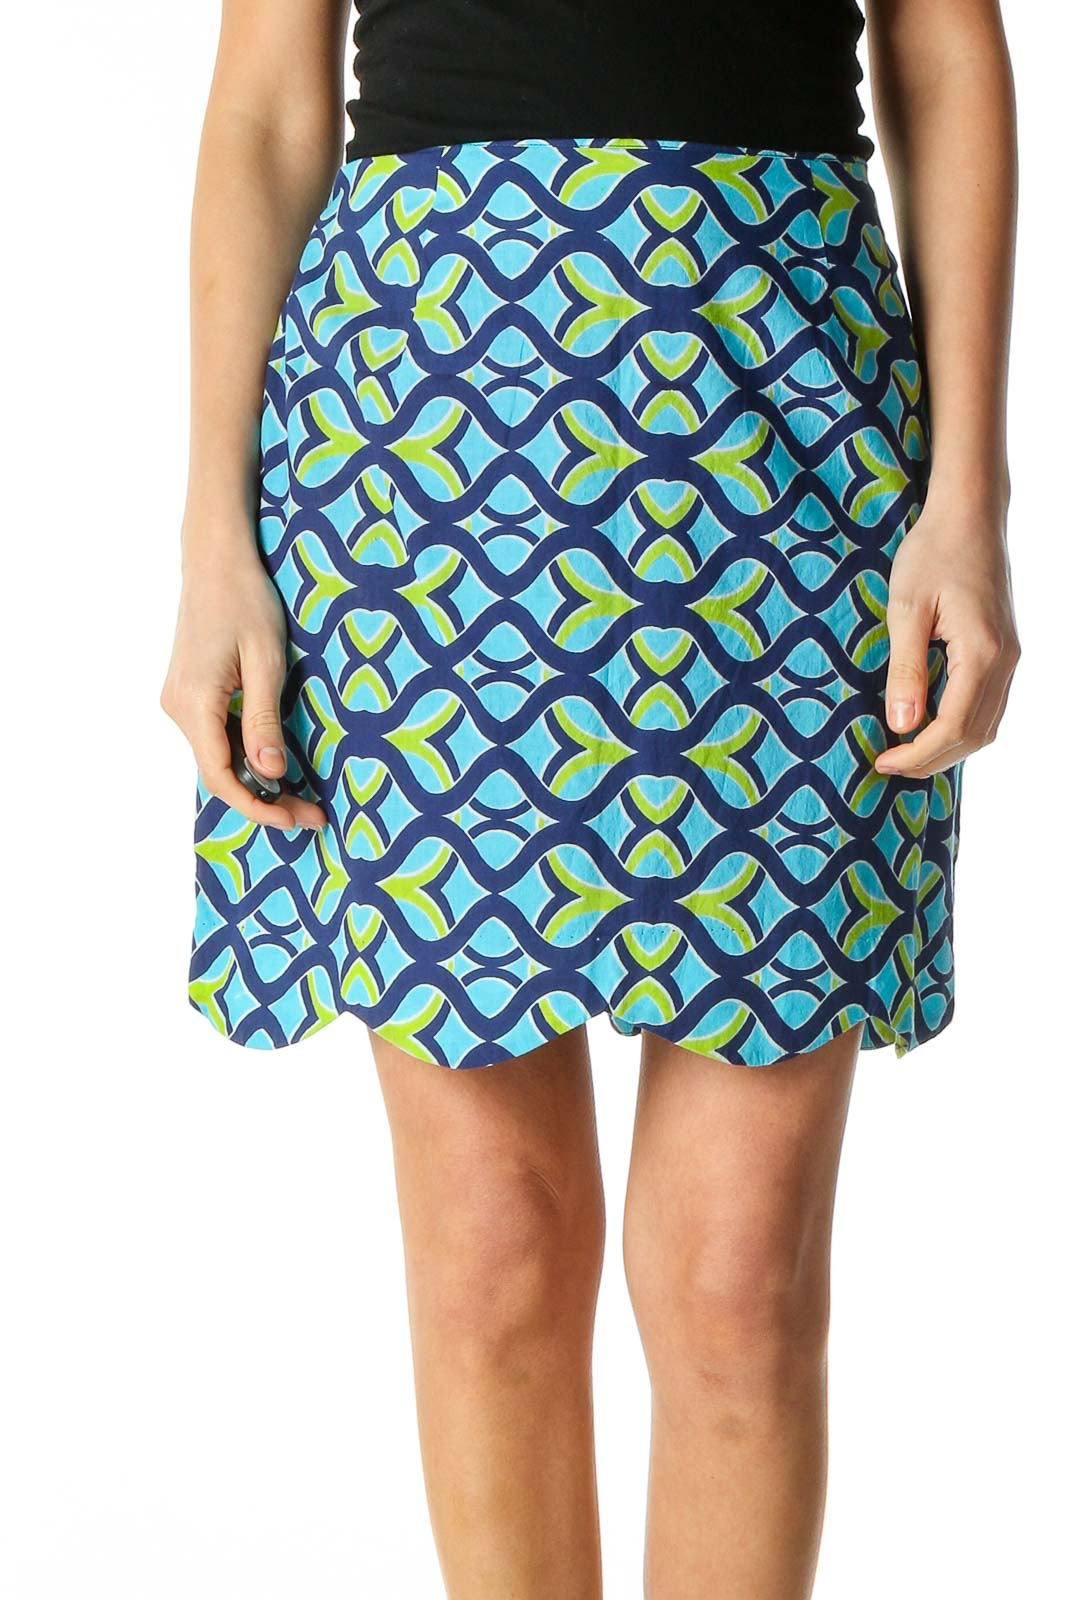 Blue Graphic Print Chic Straight Skirt Front